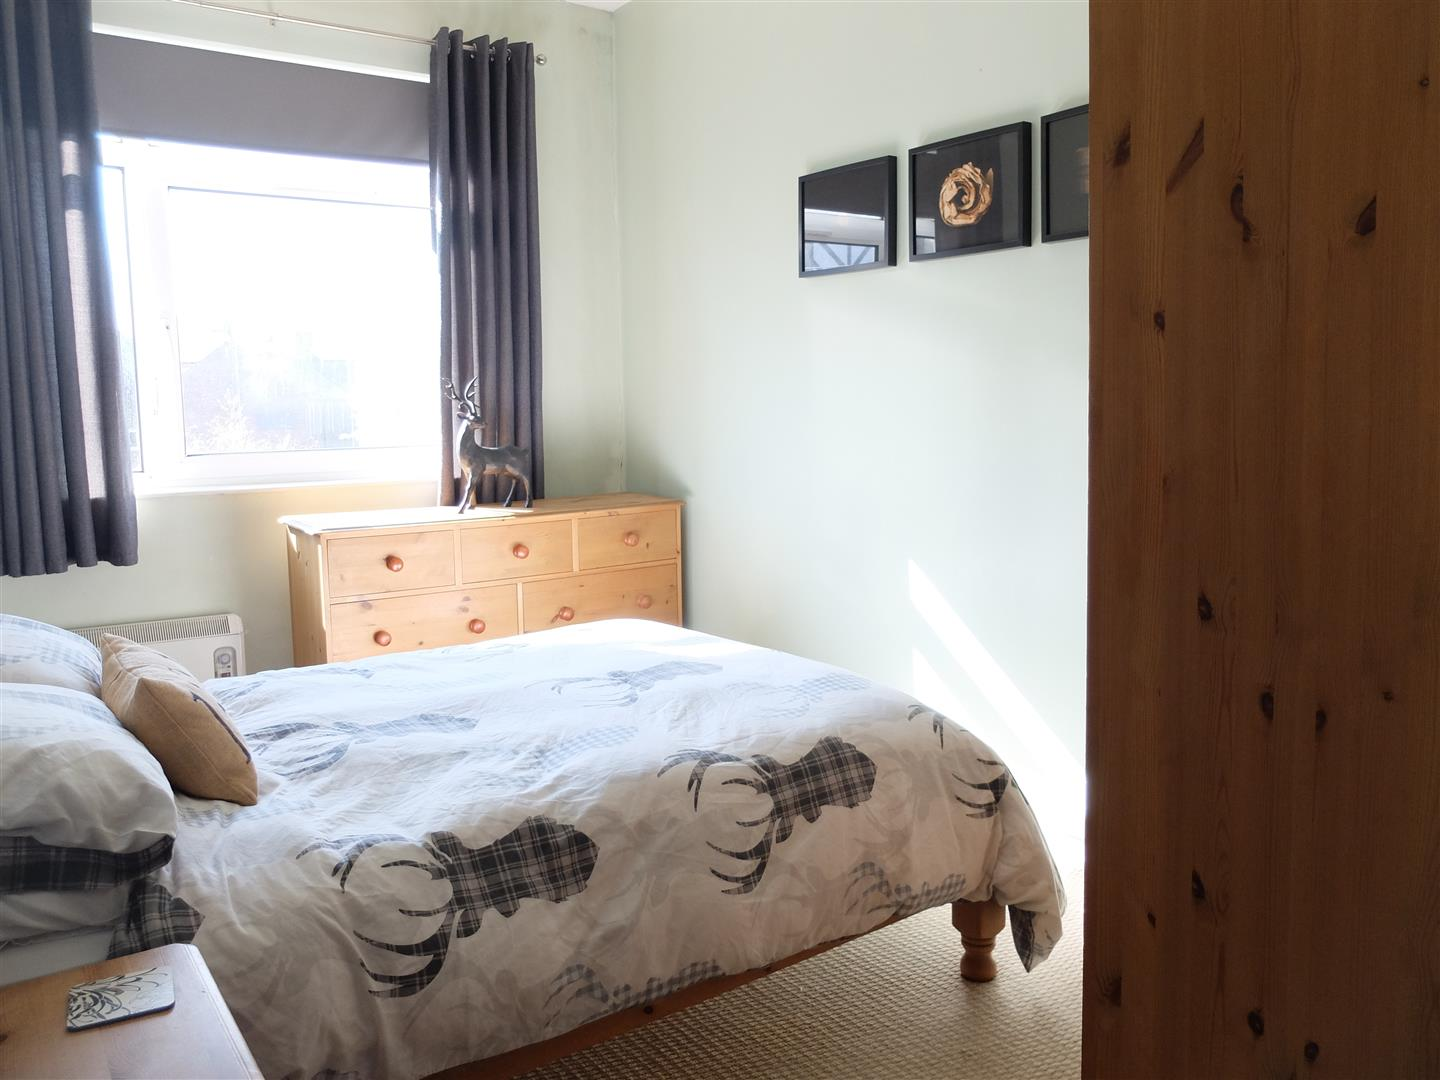 Flat 16 Willowbank Carlisle 2 Bedrooms Flat For Sale 70,000